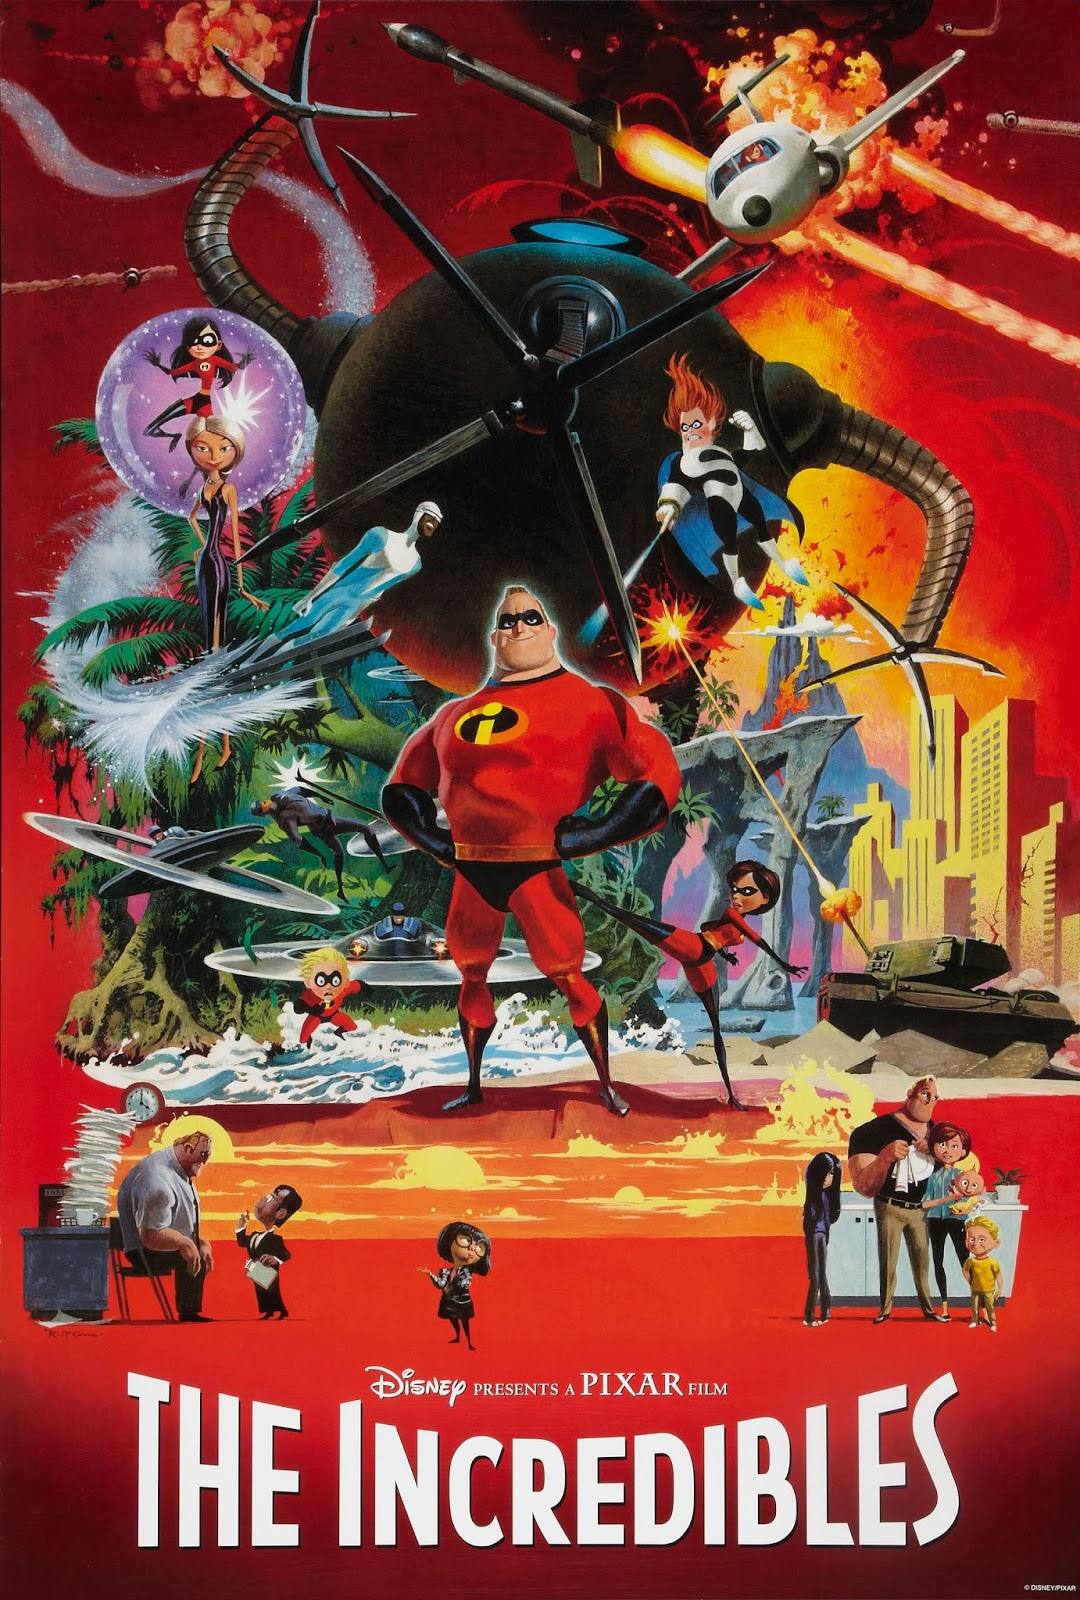 This Is The Incredibles 2 Movie Poster You Ve Been Waiting For Pixar Post